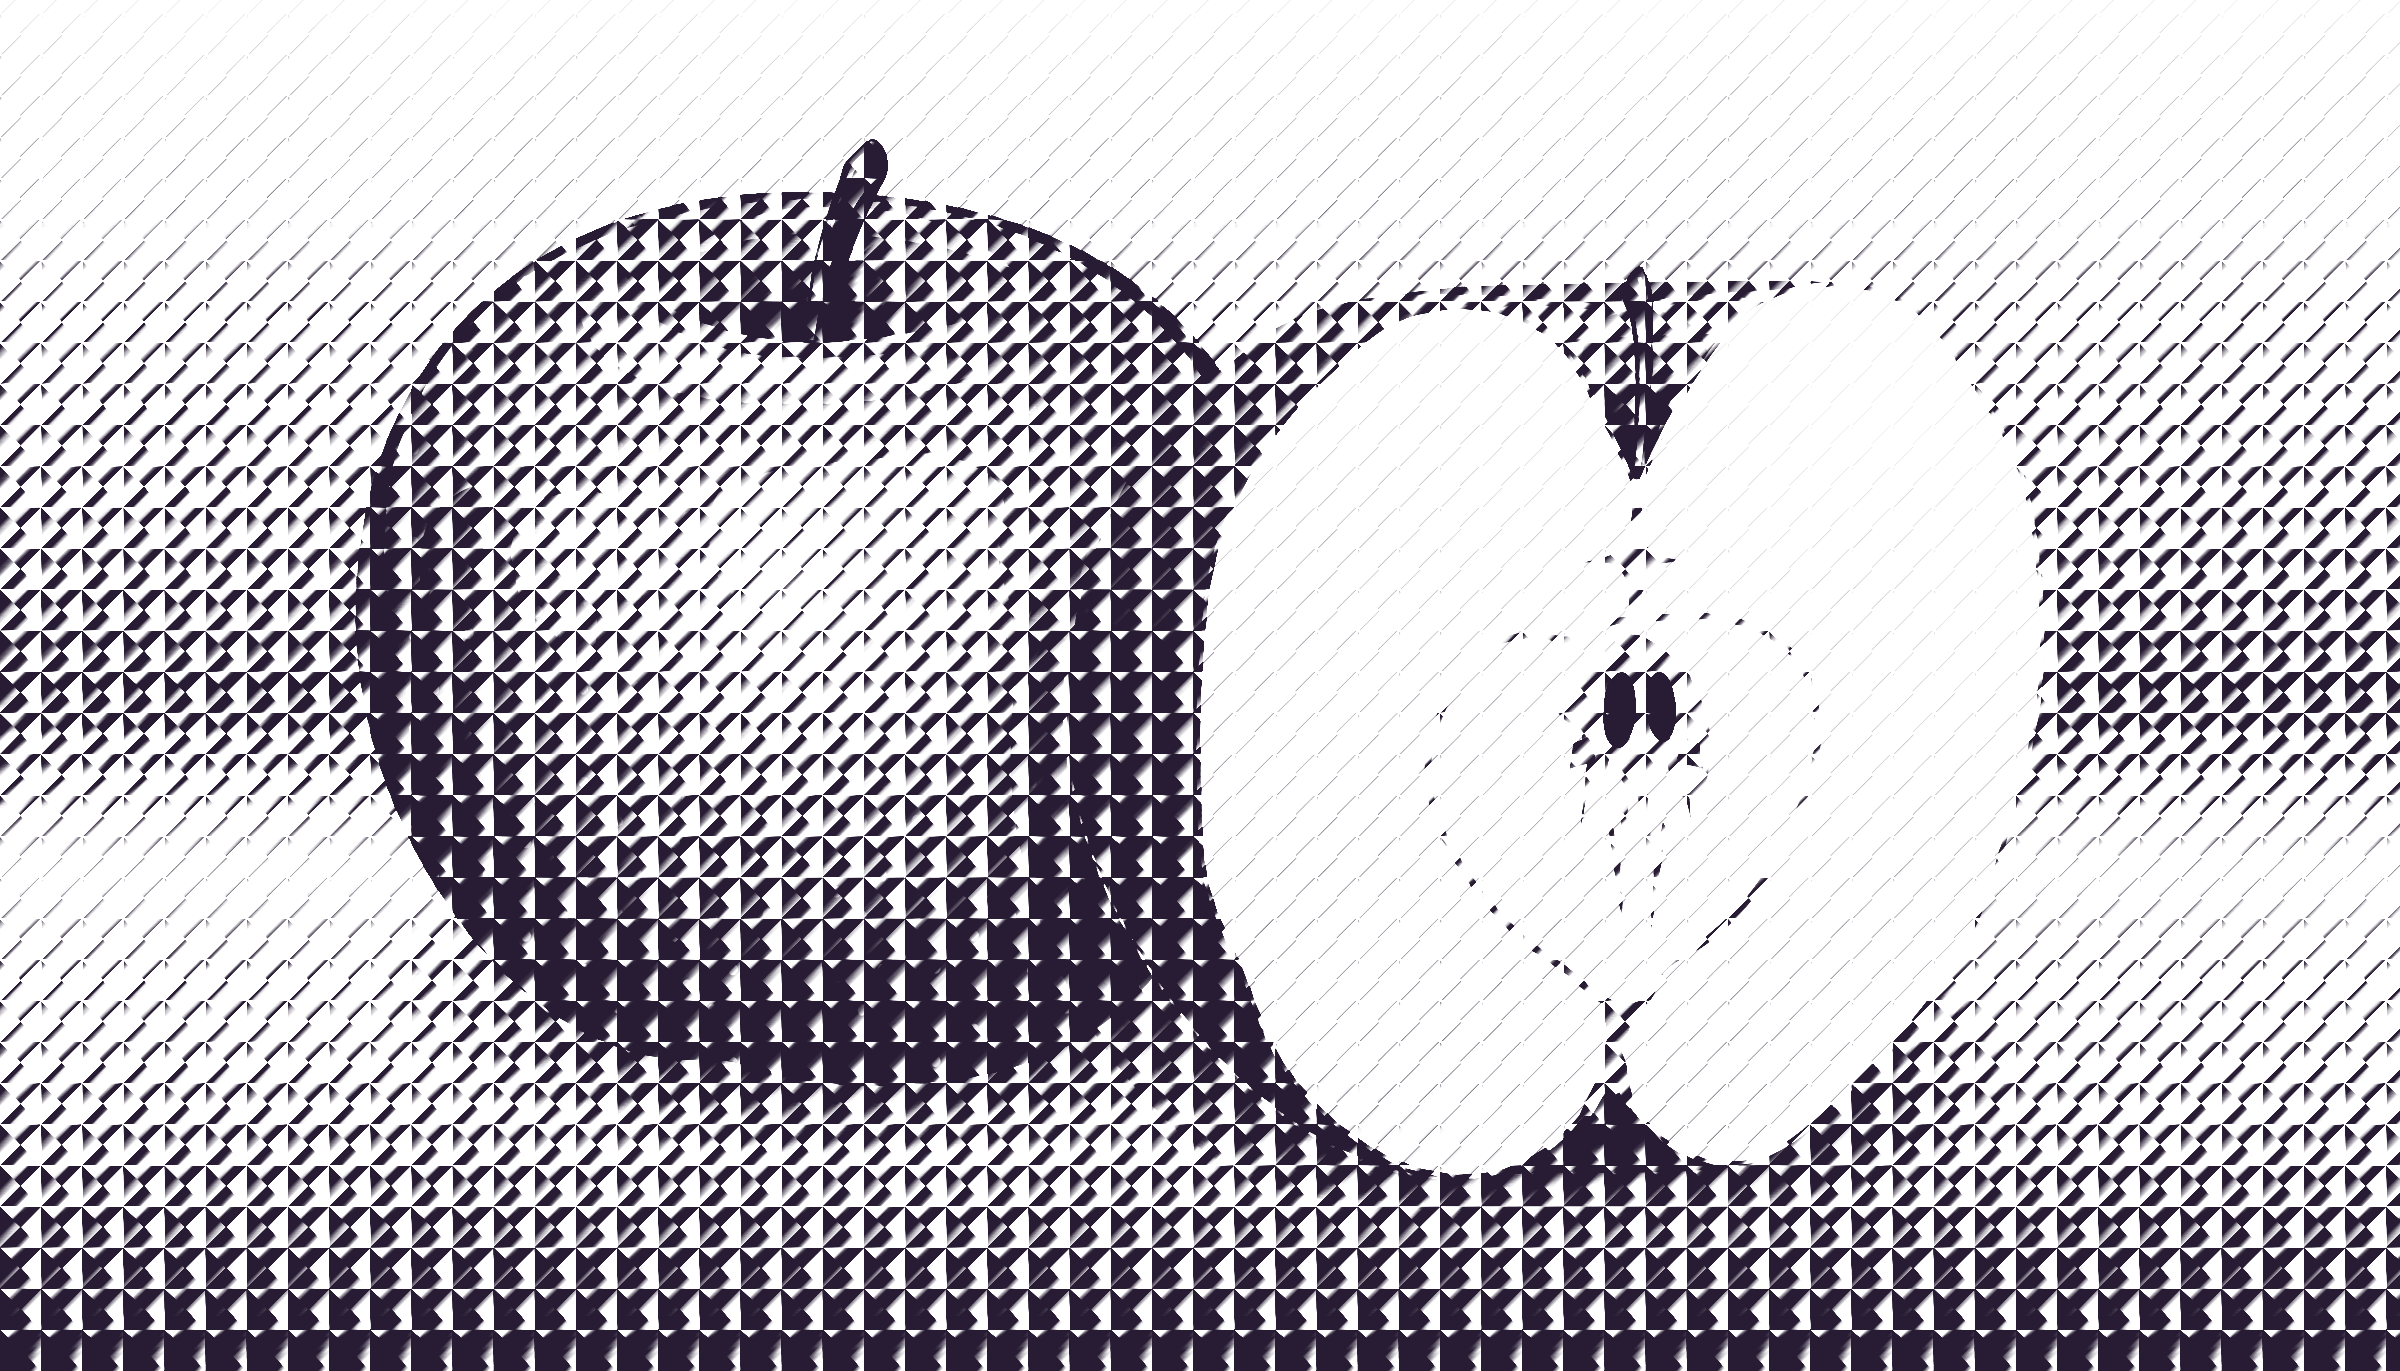 halftone apple 7 by Lazur URH